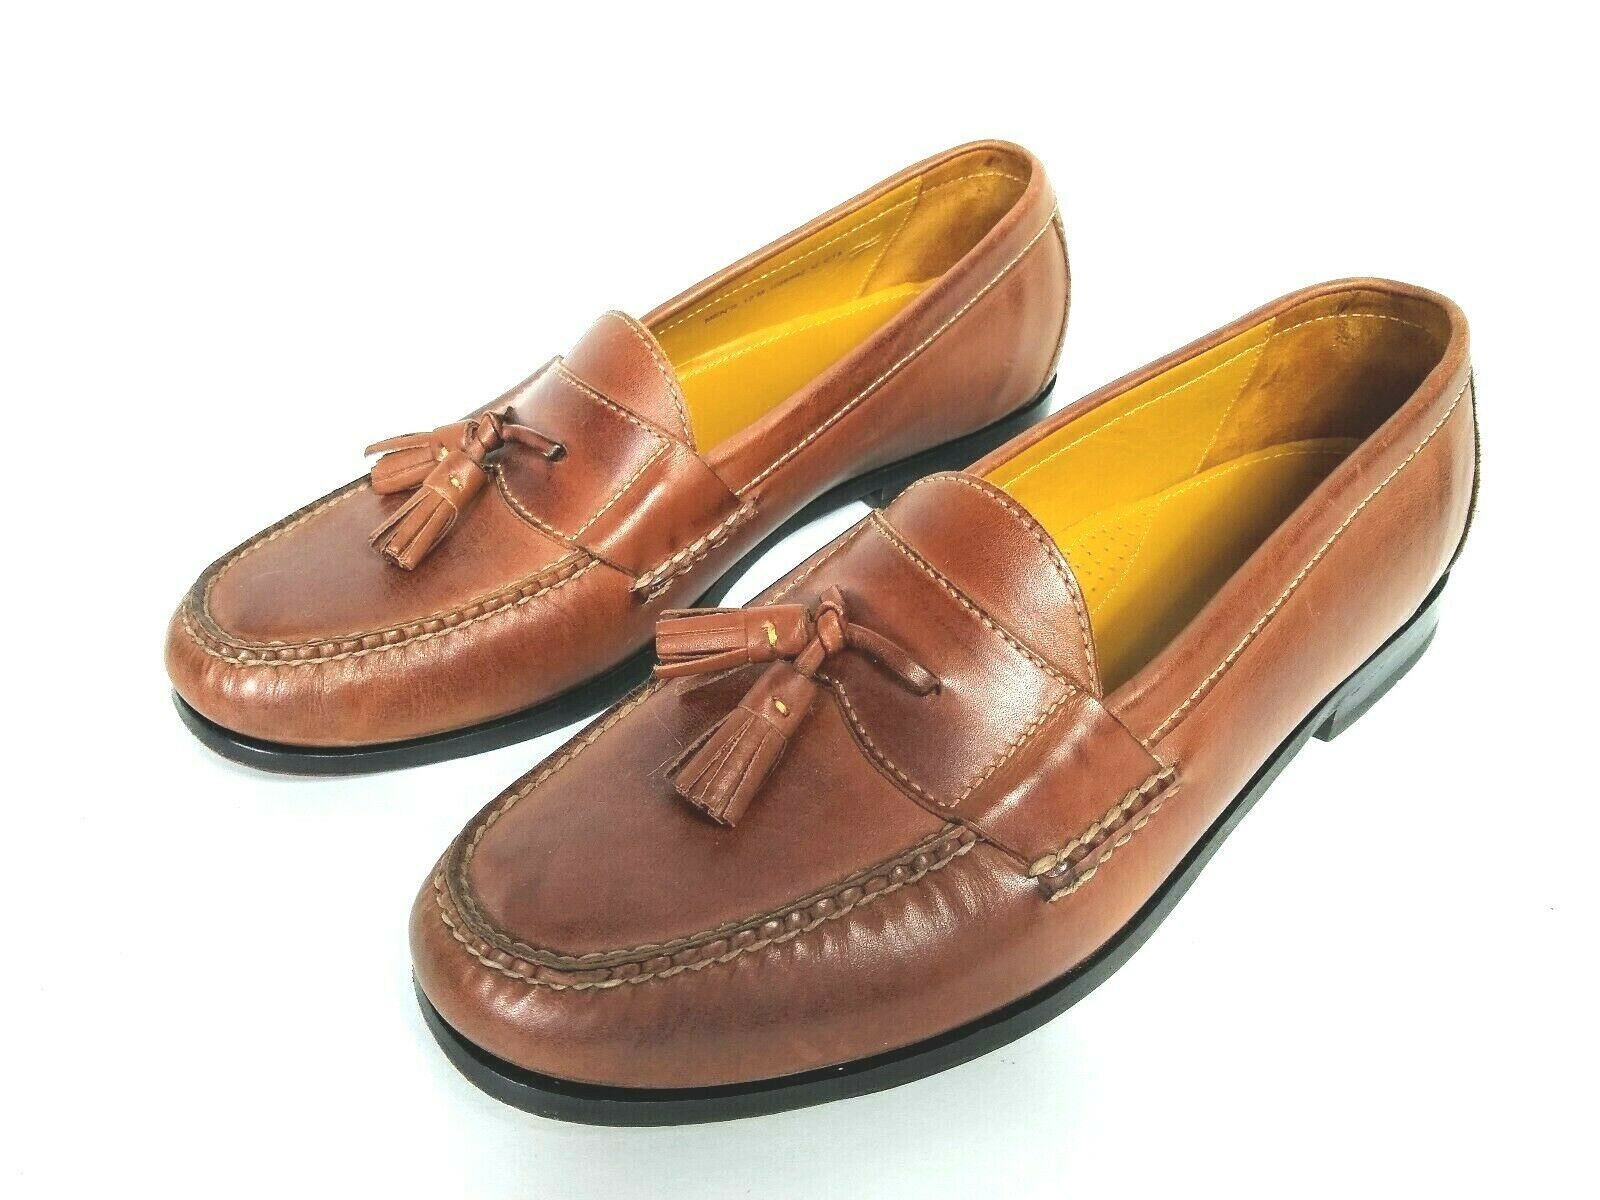 Cole Haan Men's Brown Leather Slip On Dress Pinch Tassel Loafer Sze 12 Air Sole  image 6